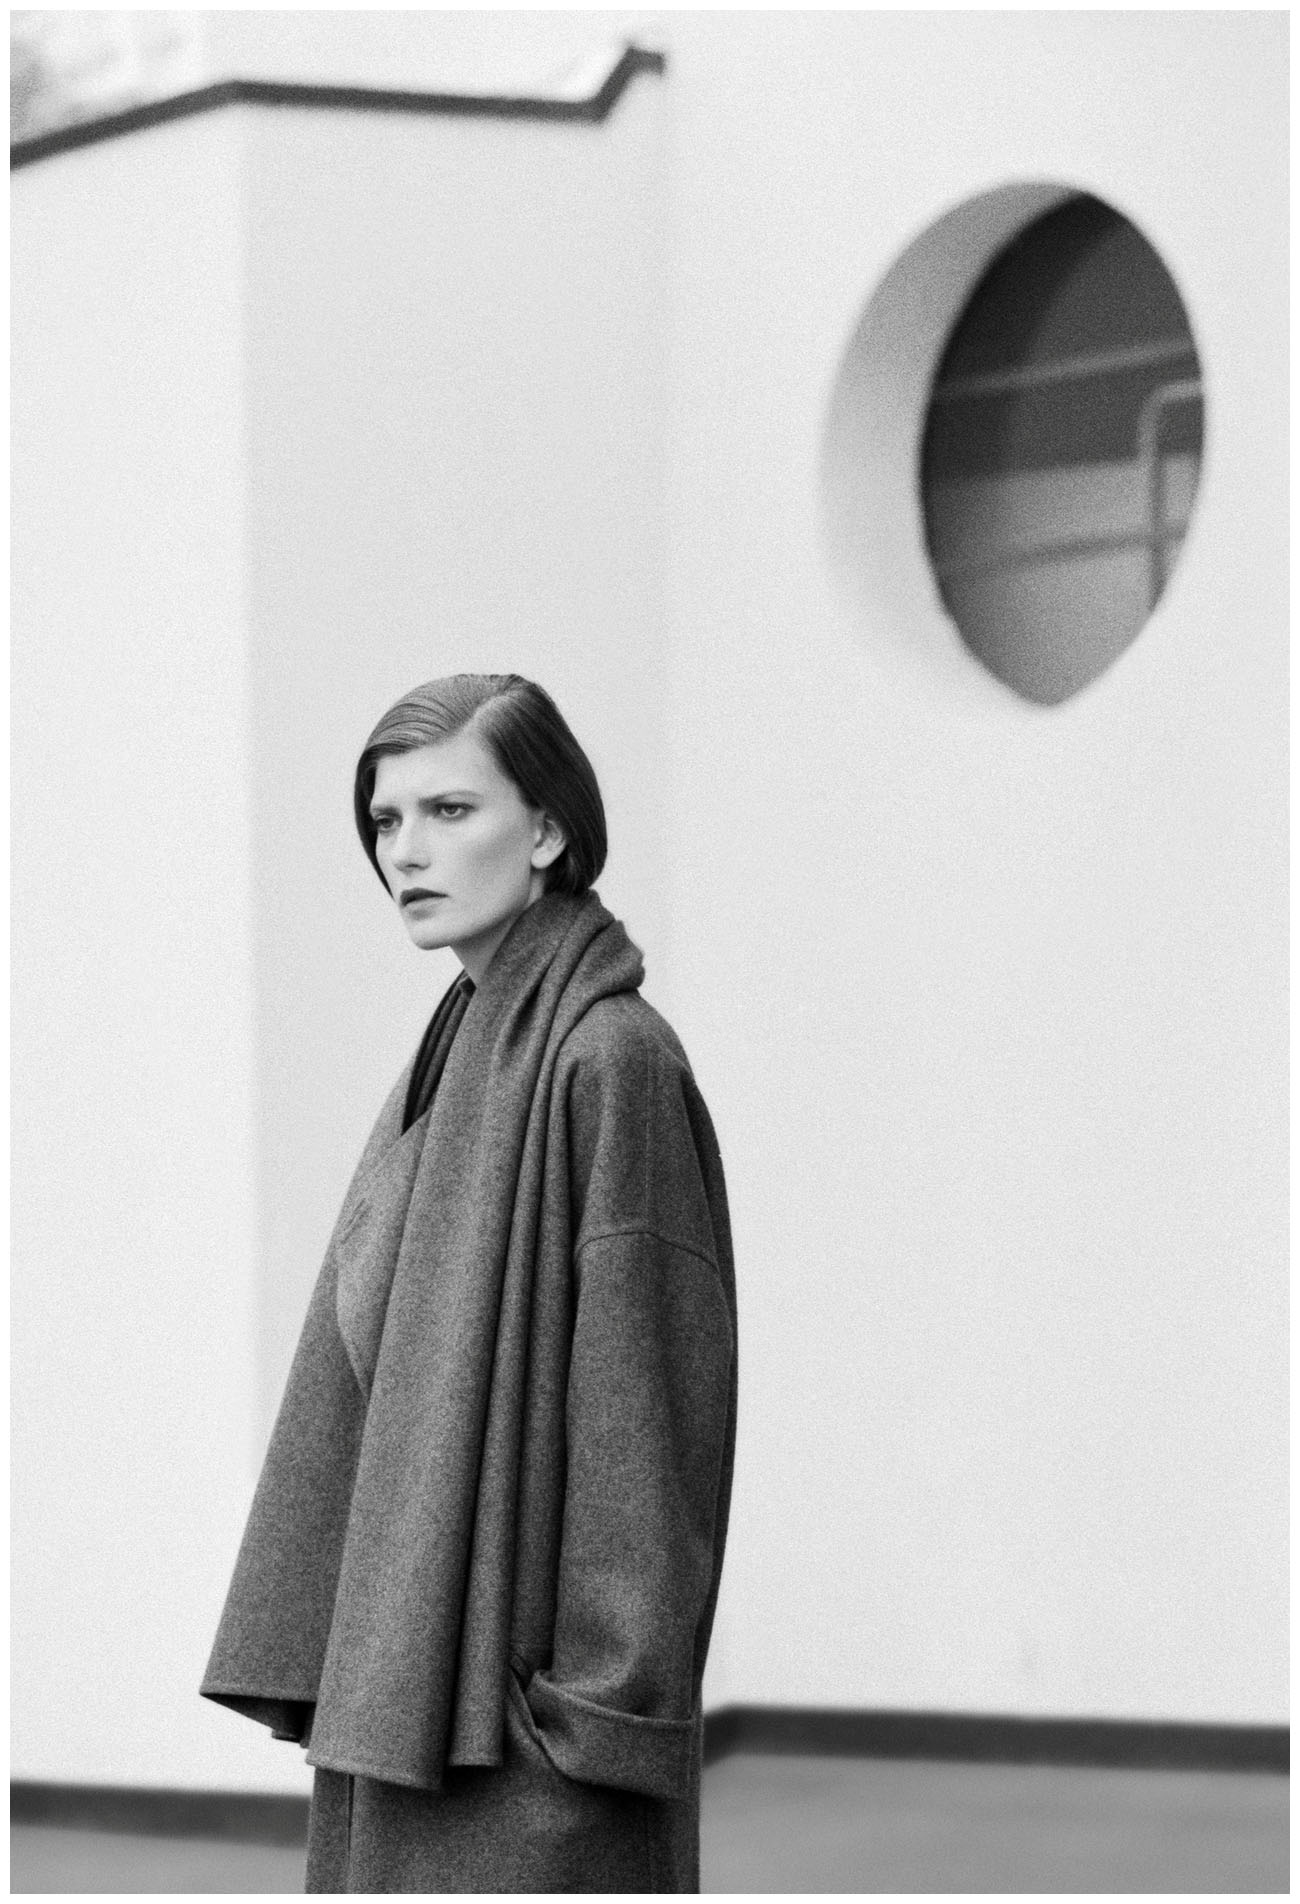 Hermès Winter 2012 catalogue Valerija Kevala by Zoe Ghertner